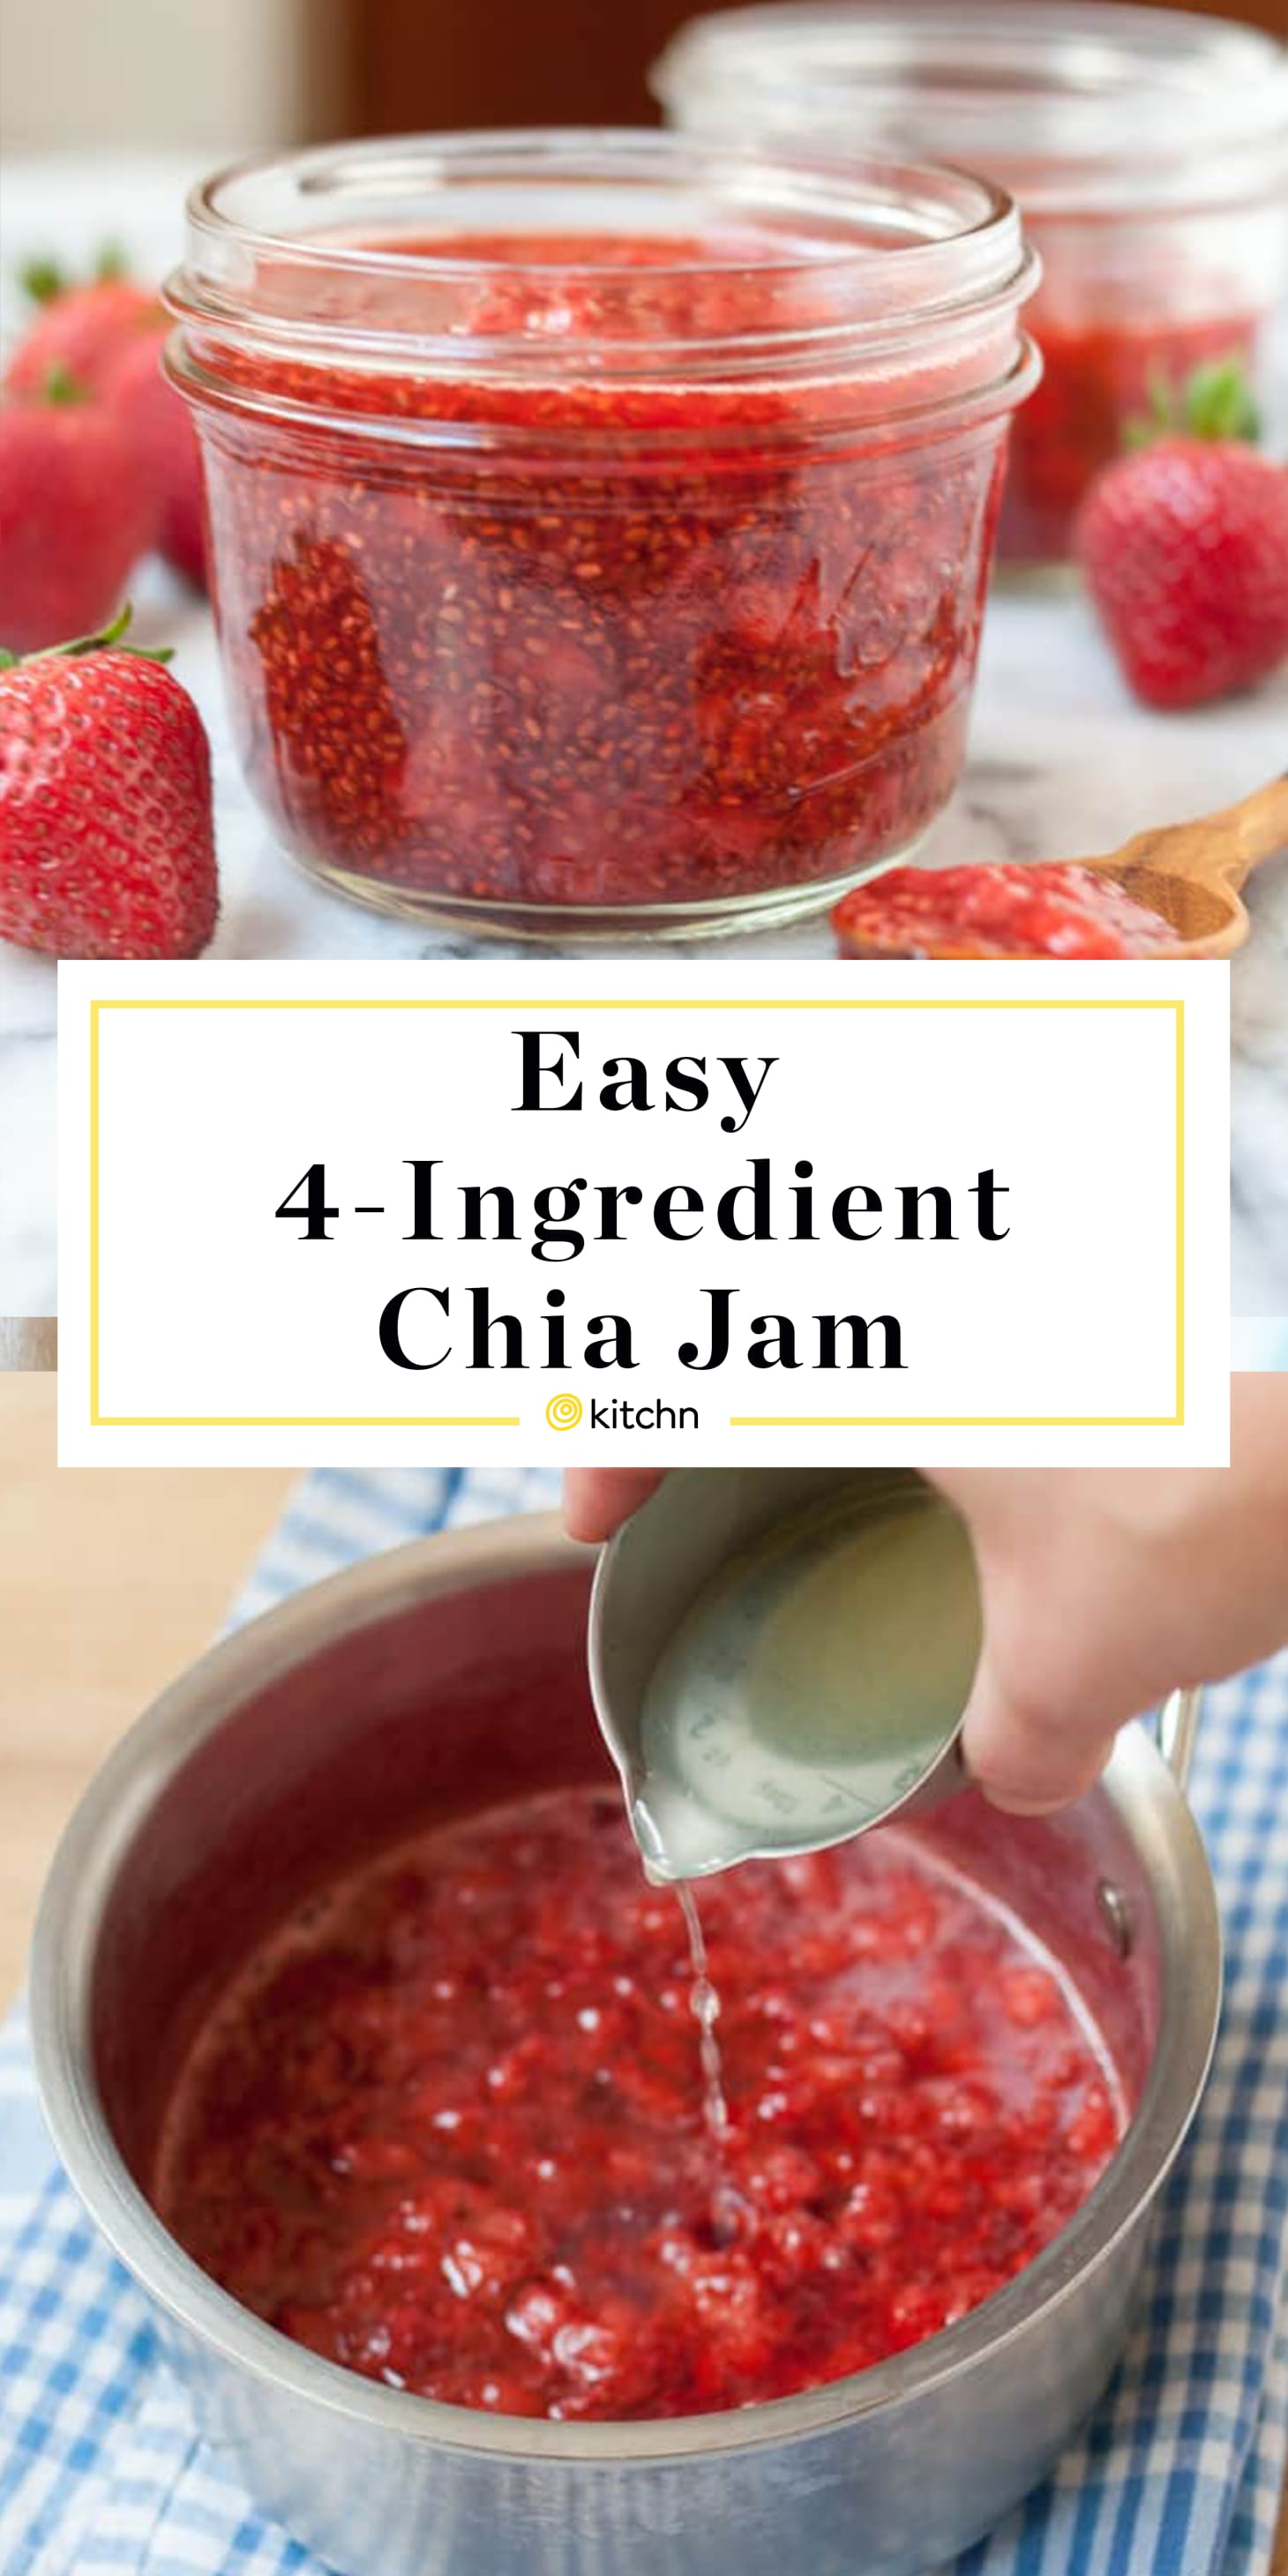 How To Make Easy Chia Jam